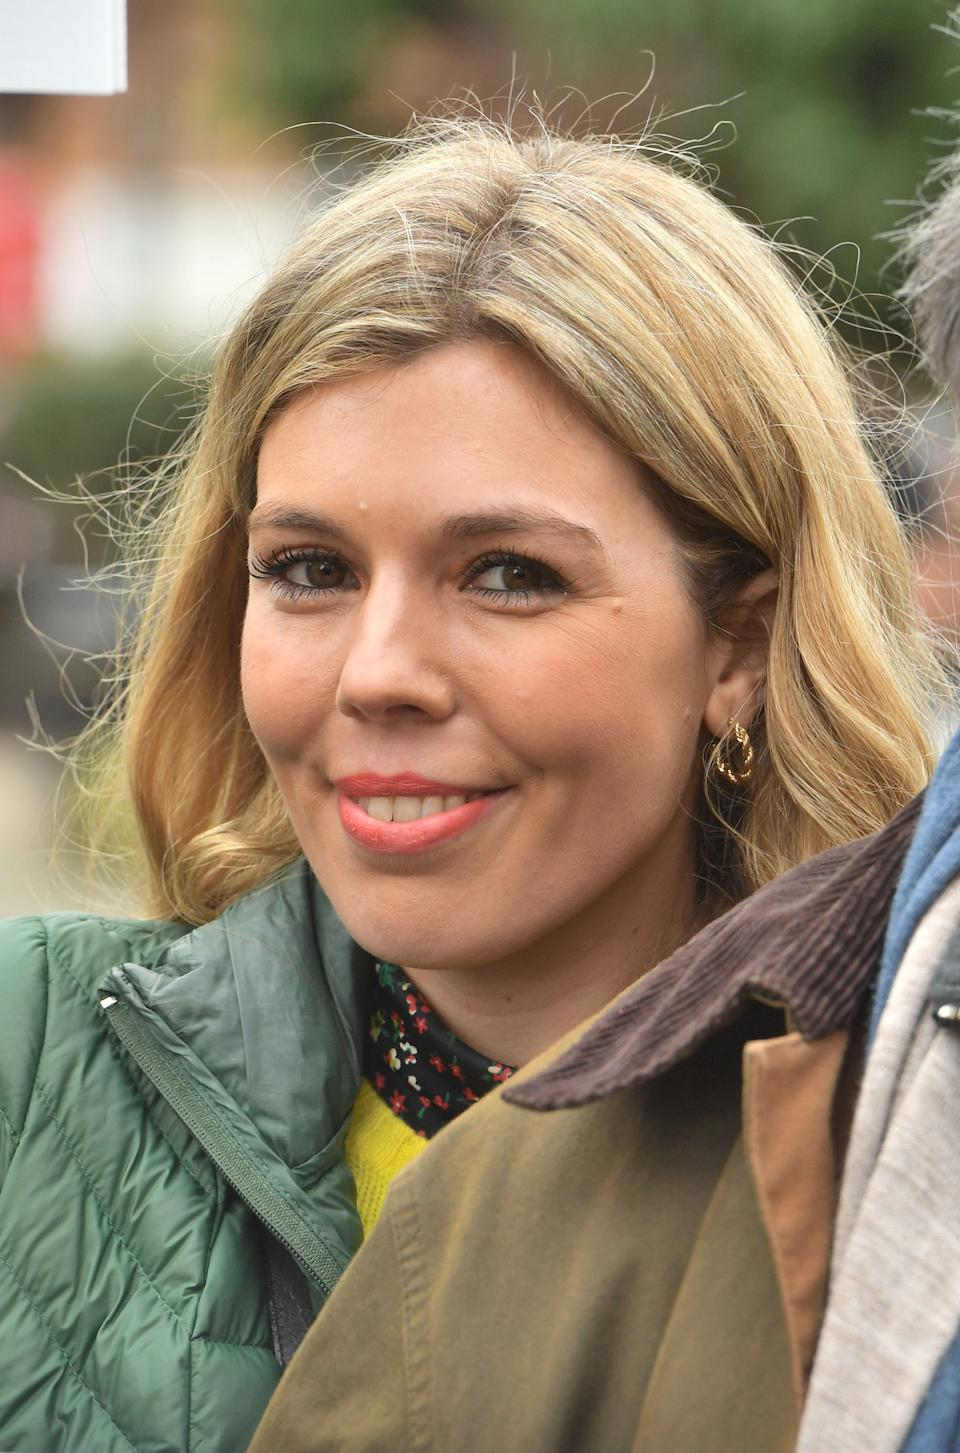 Activist Carrie Symonds takes part in an anti-whaling protest outside the Japanese Embassy in central London.